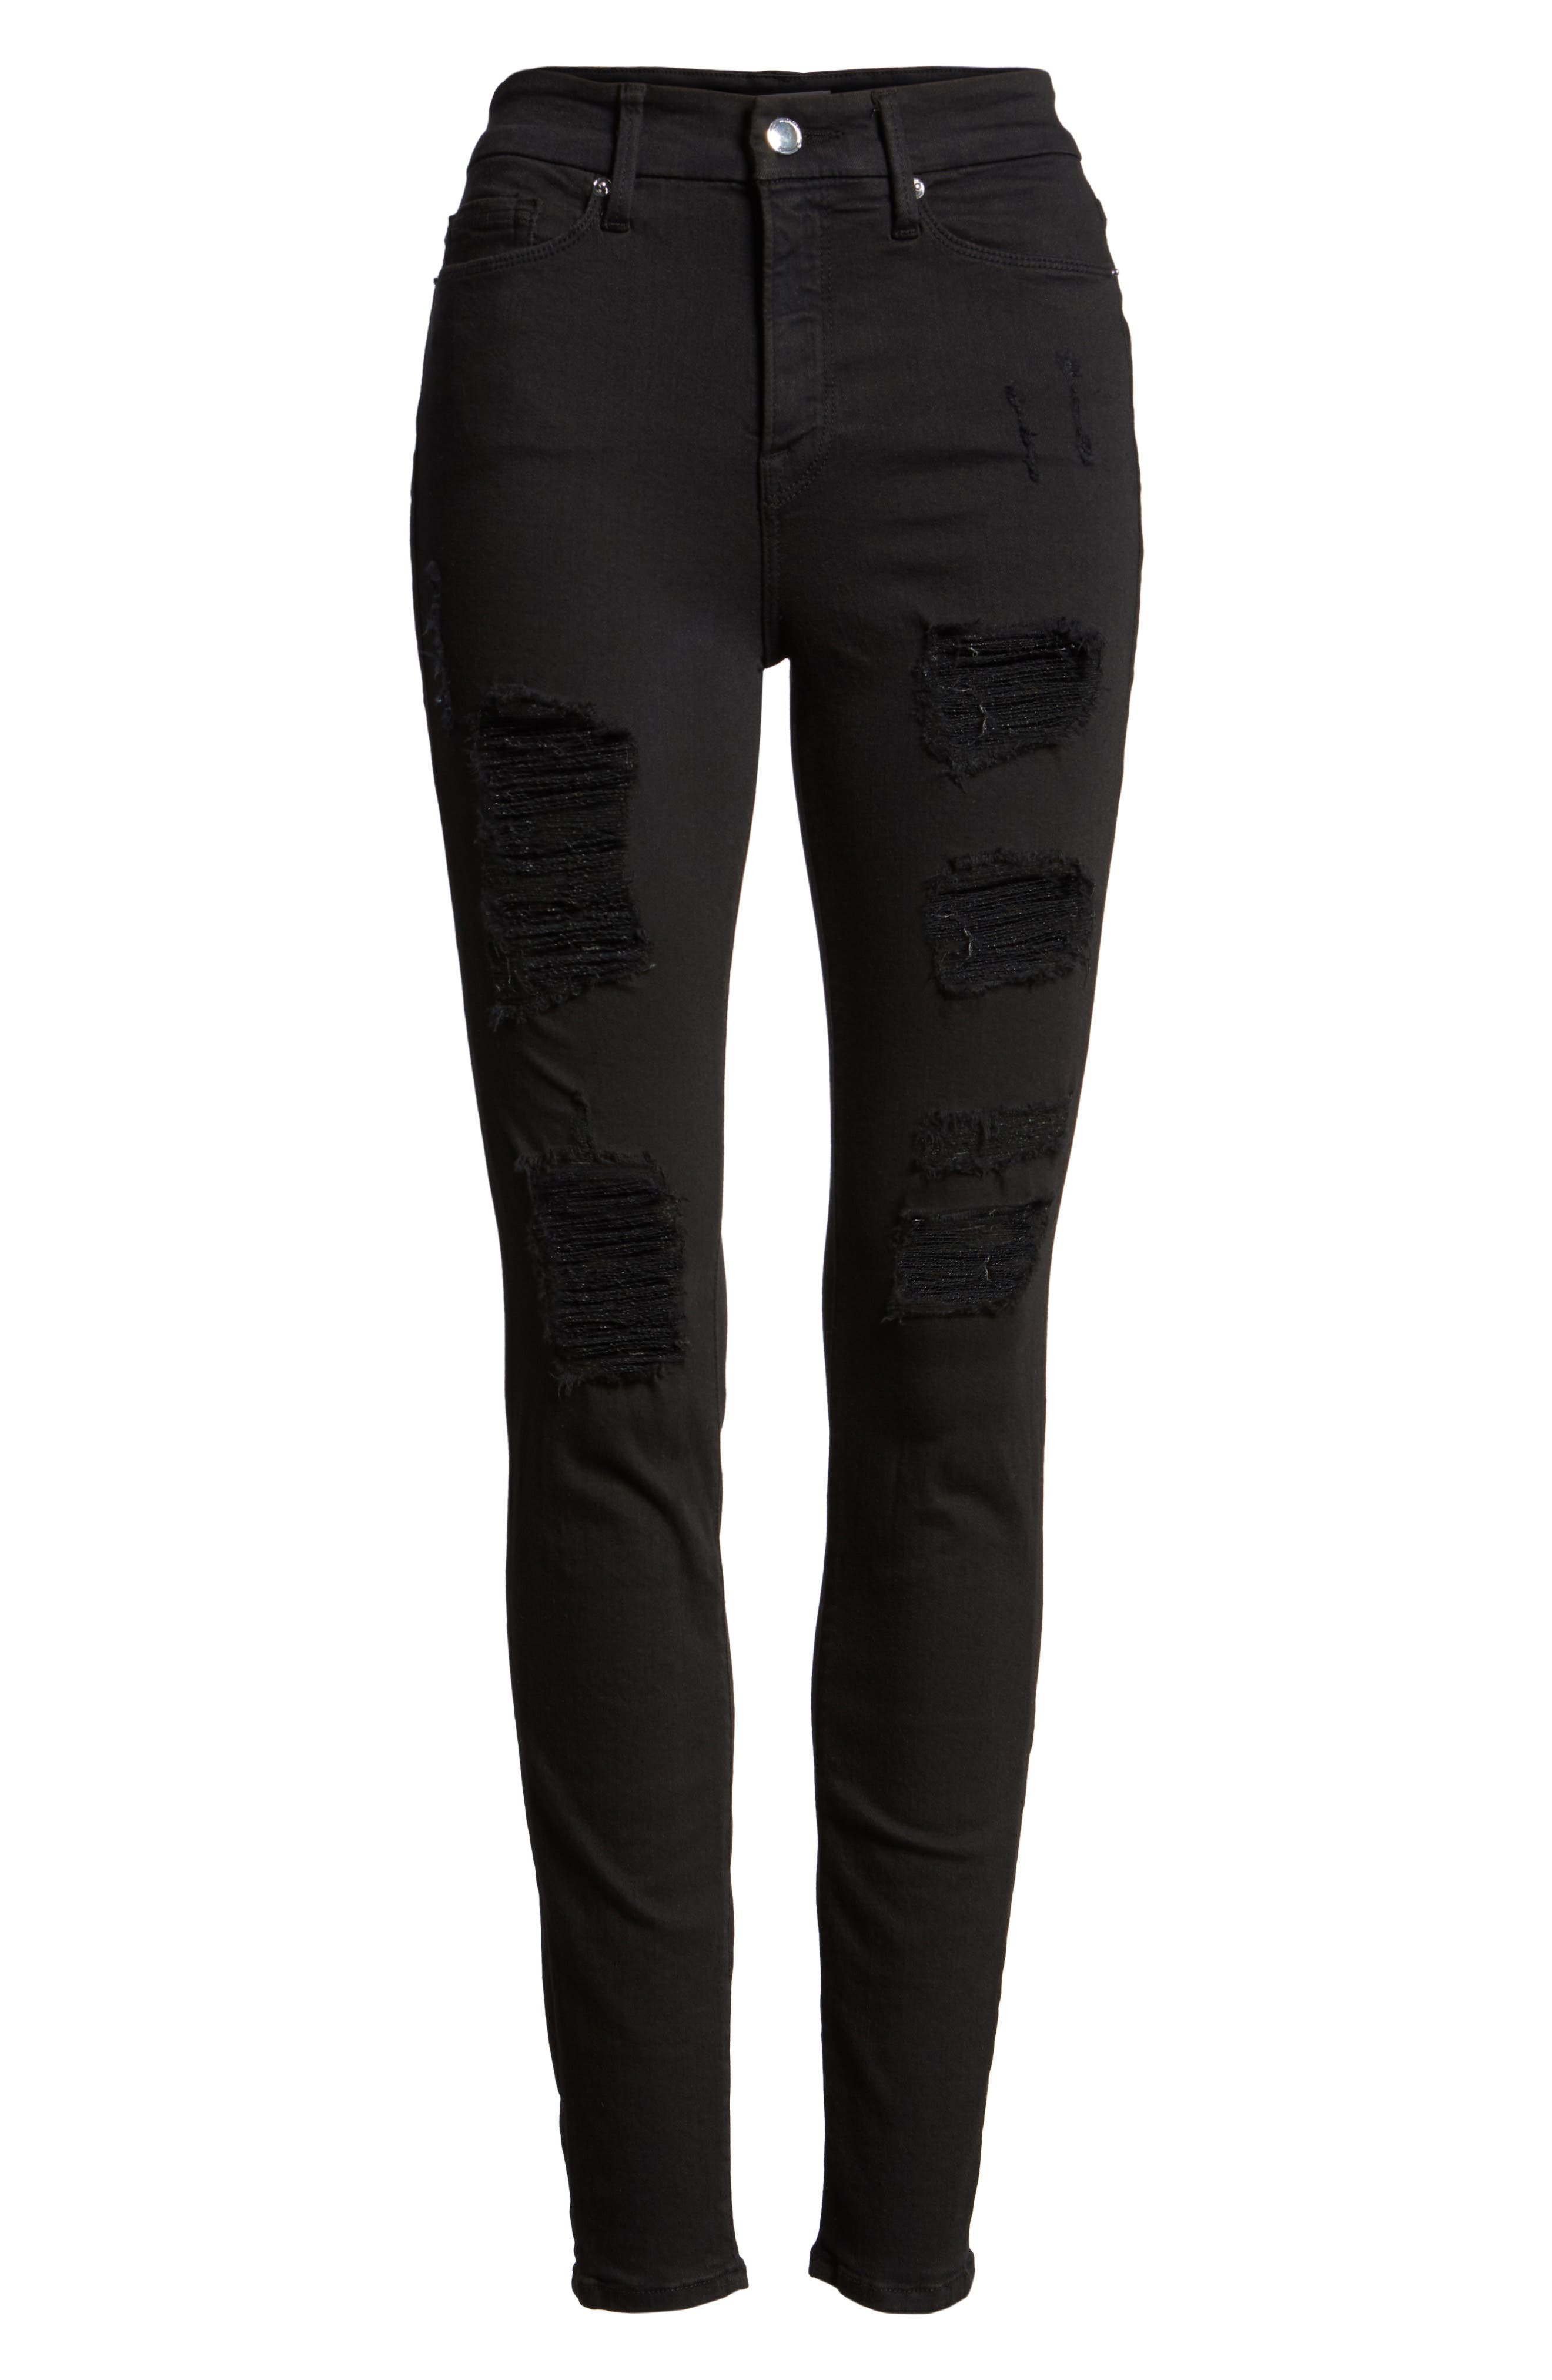 GOOD AMERICAN, Good Legs High Rise Ripped Skinny Jeans, Main thumbnail 1, color, 001